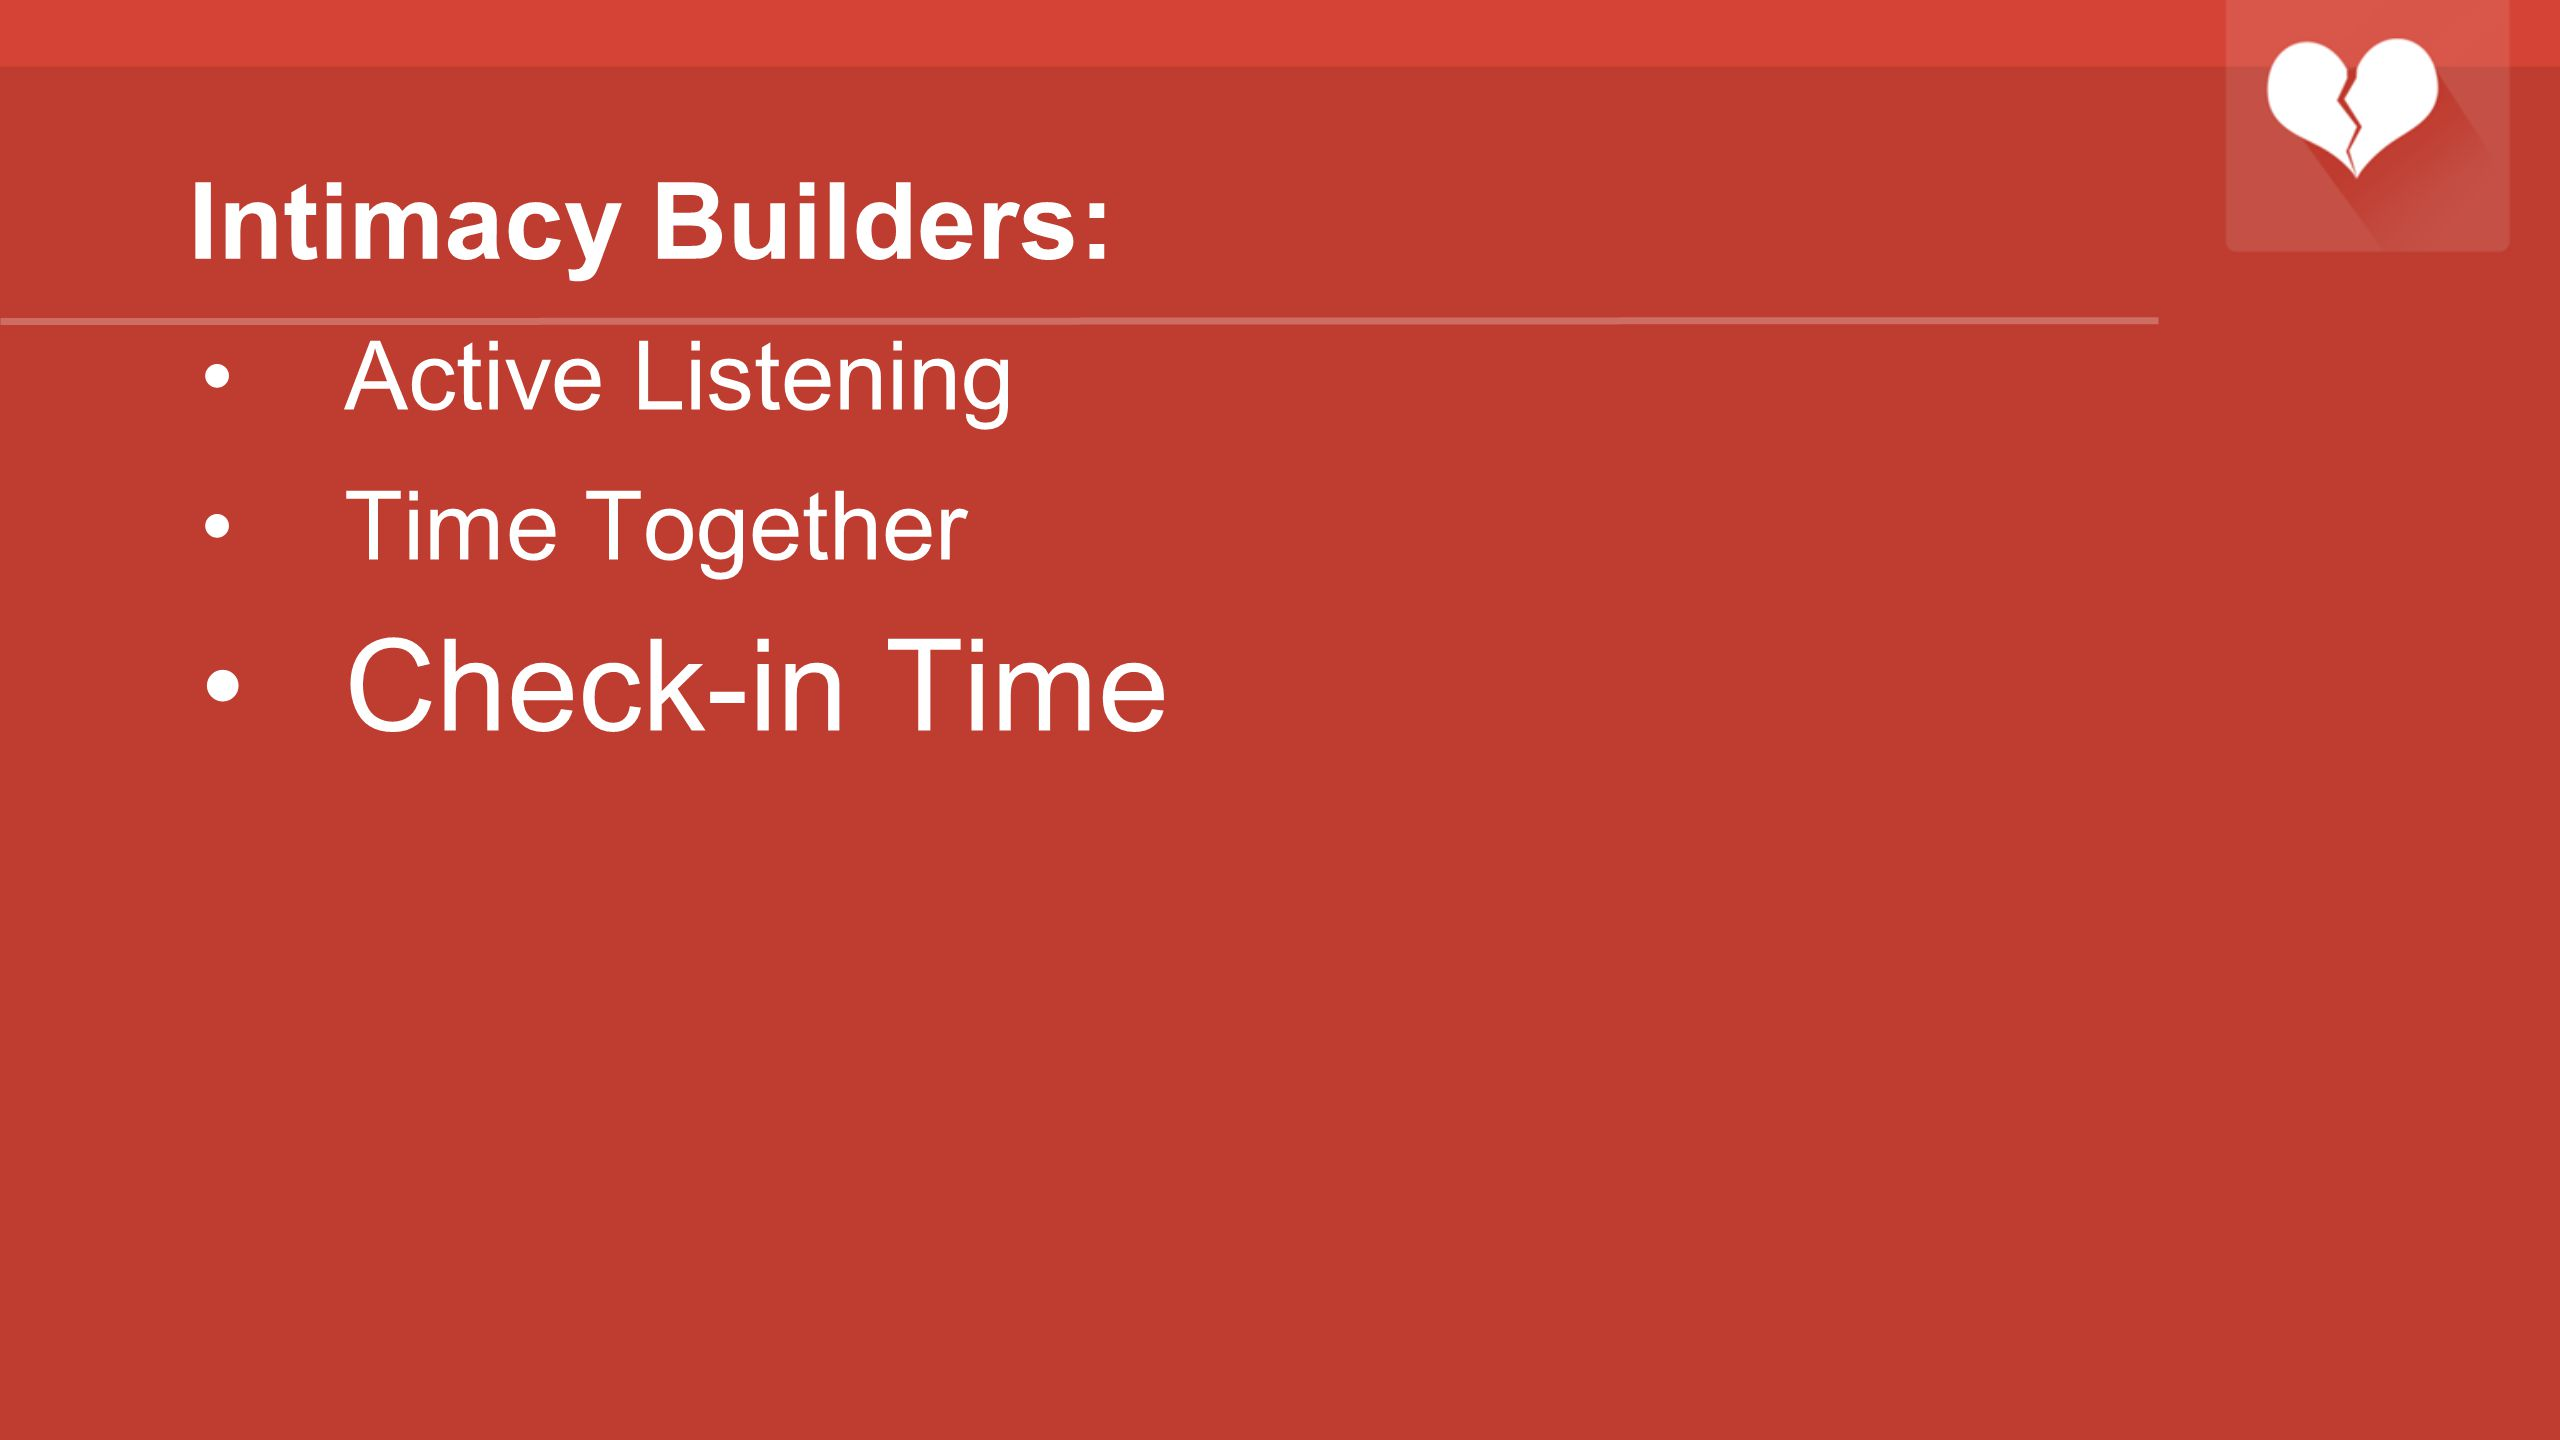 Intimacy Builders: Active Listening Time Together Check-in Time